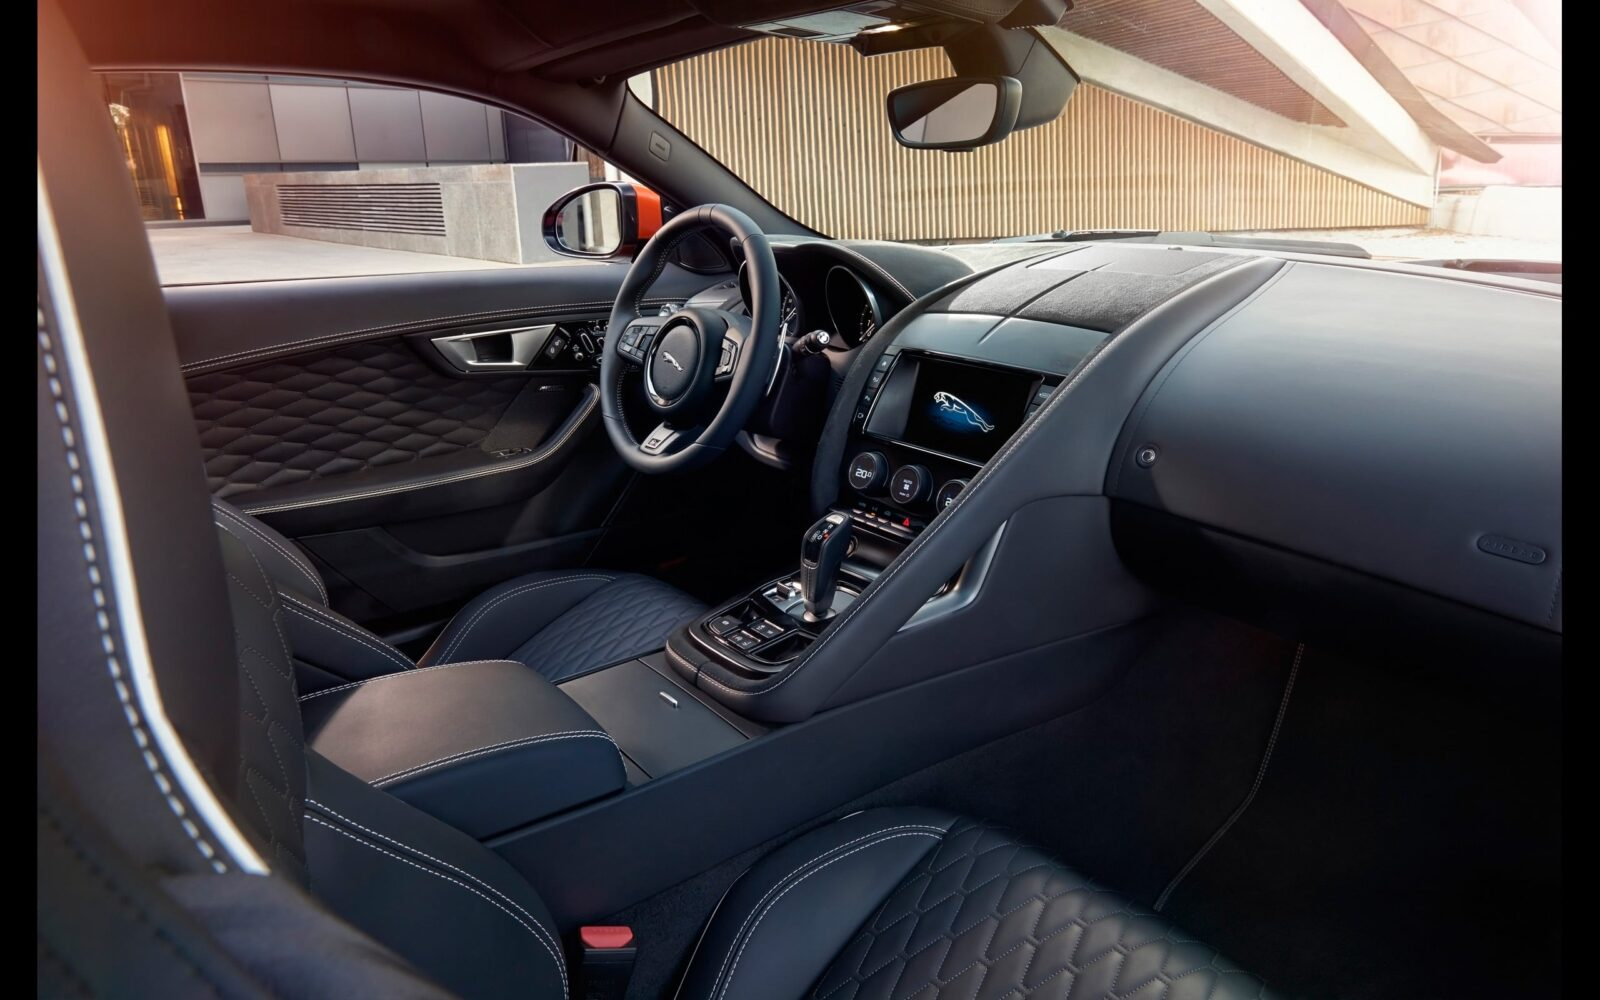 2017 Jaguar F Type SVR Convertible interior full HD image